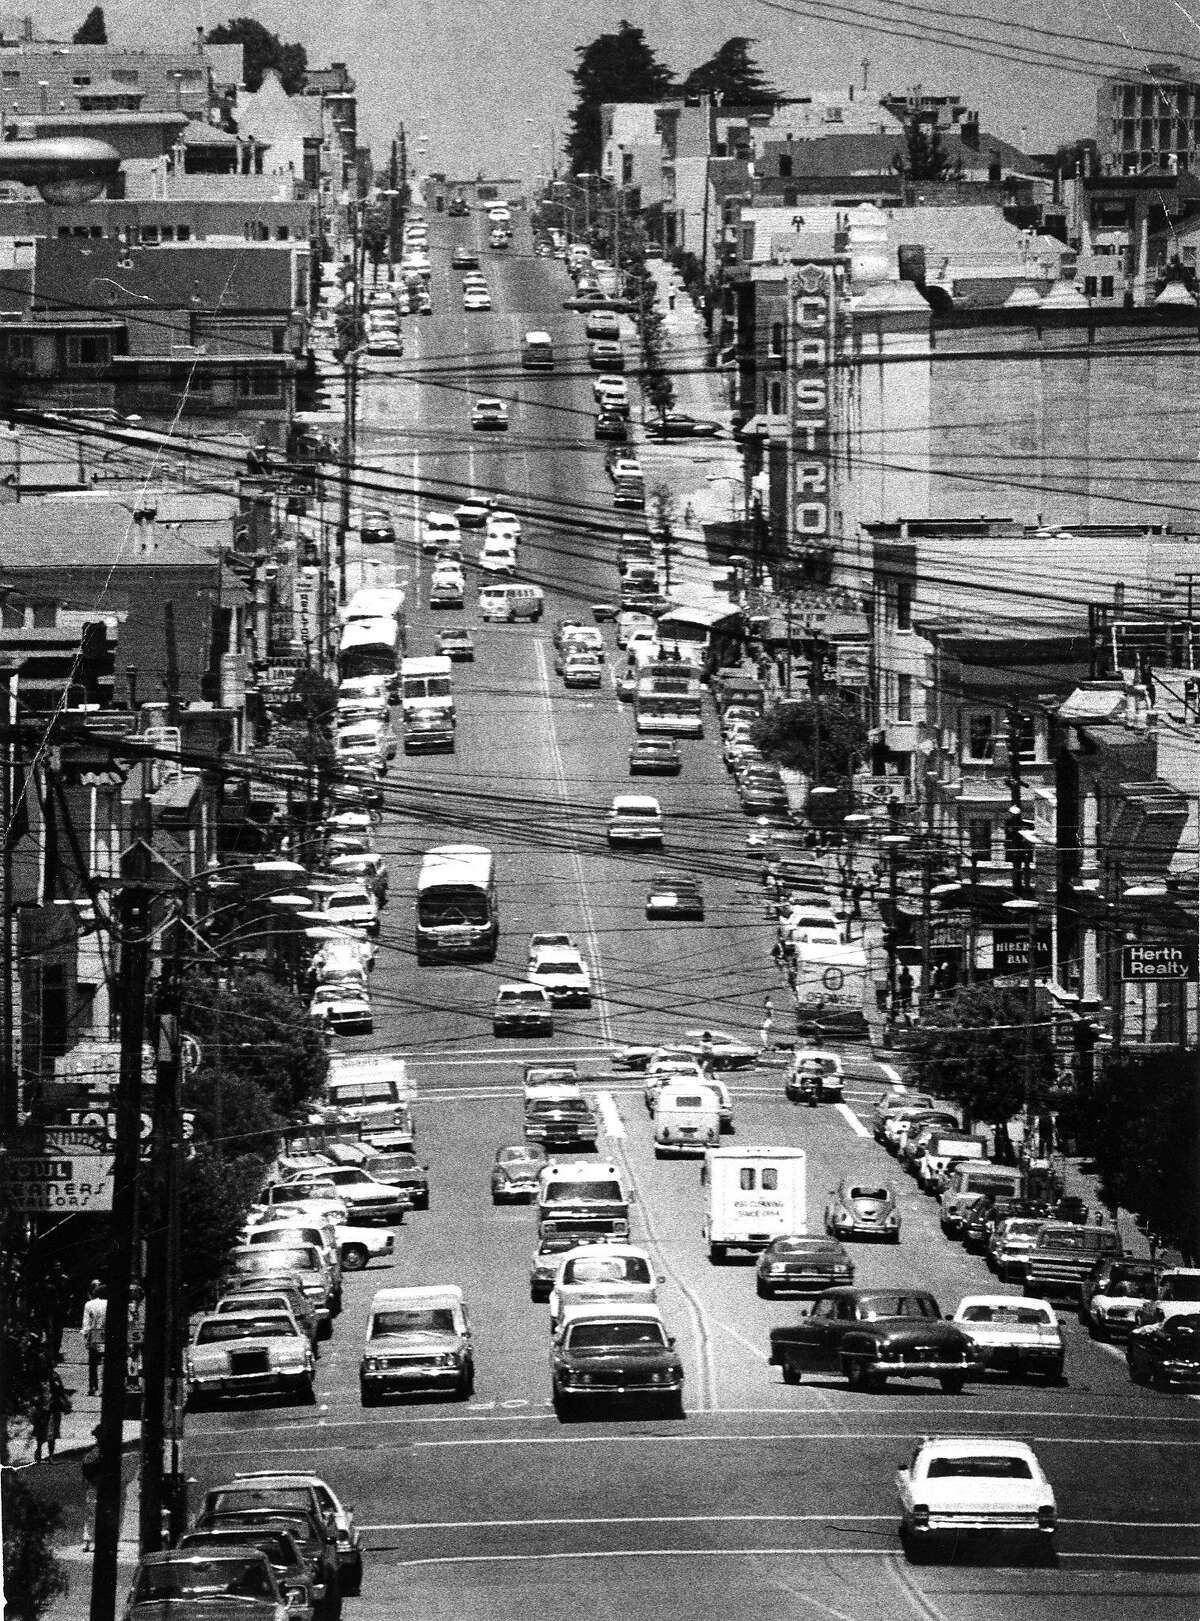 Castro Street in the Castro District June 23, 1977, the Castro Theater sign is on right